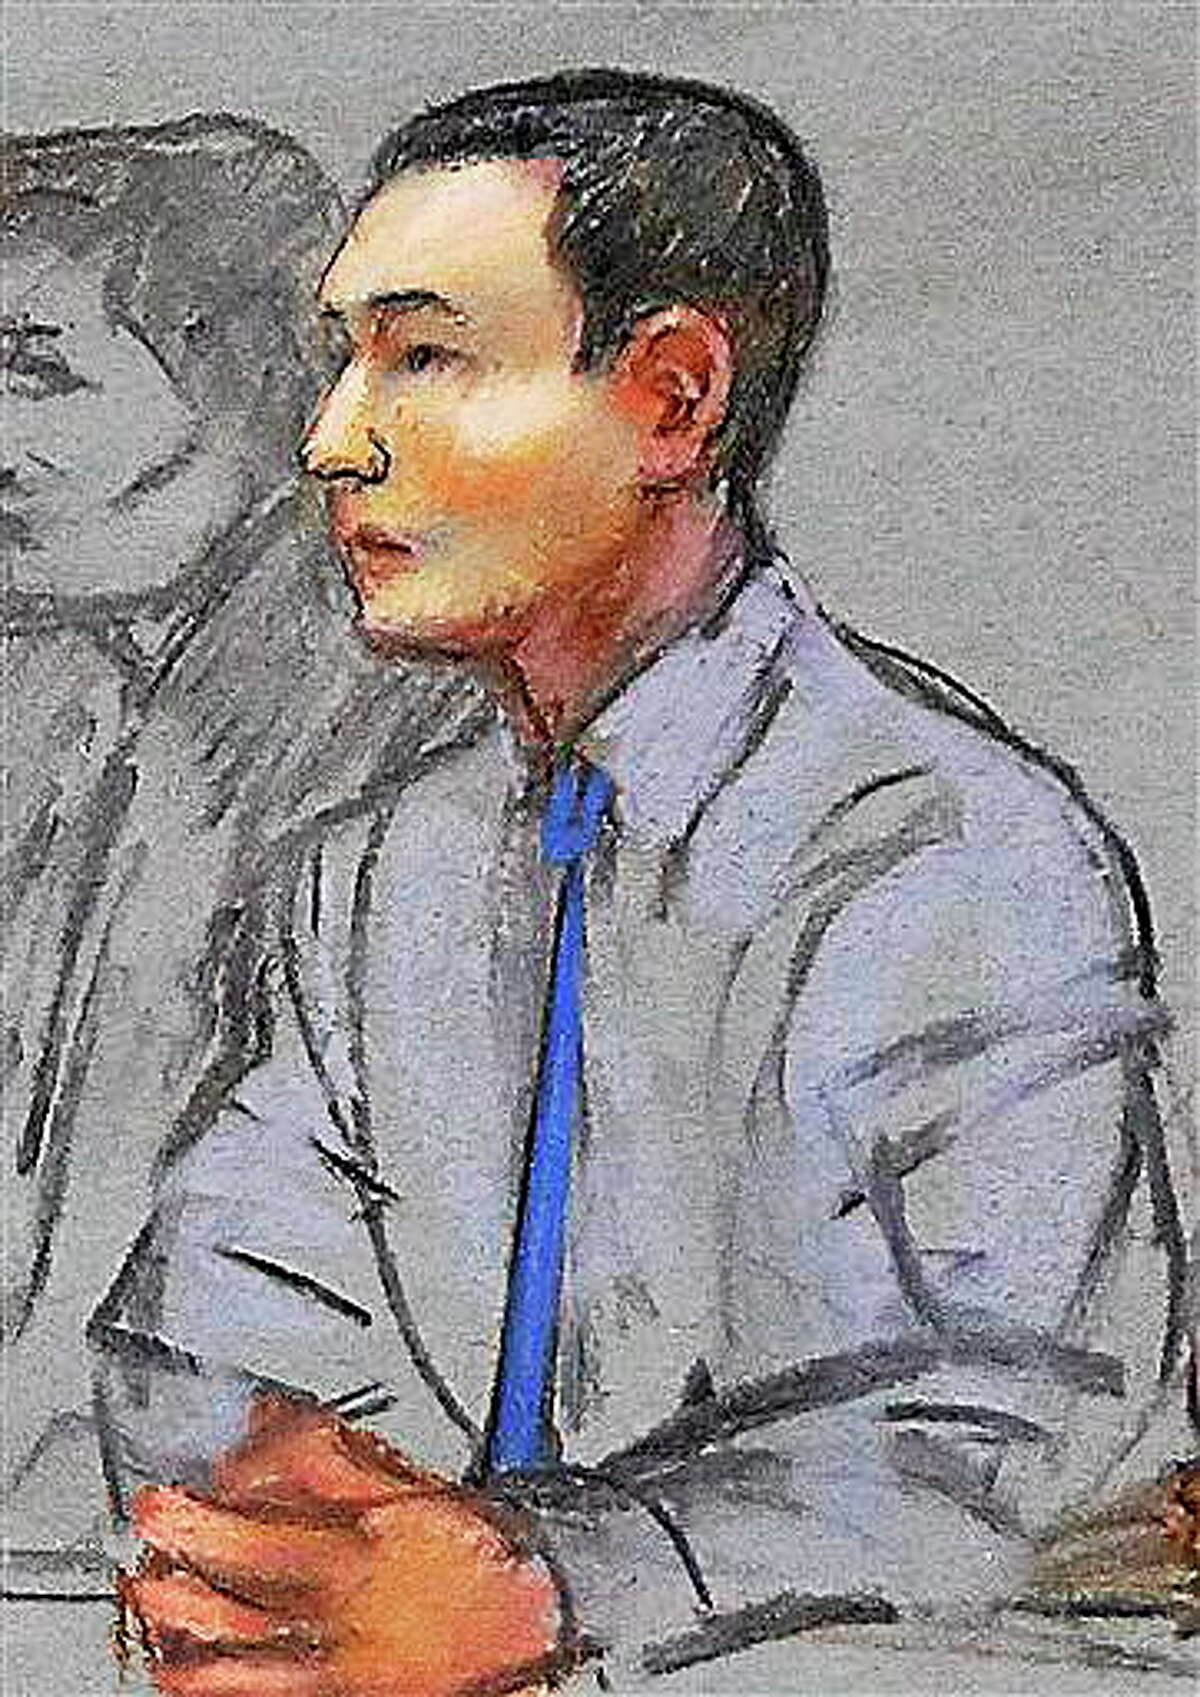 In this May 13, 2014 file courtroom sketch, defendant Azamat Tazhayakov, a college friend of Boston Marathon bombing suspect Dzhokhar Tsarnaev, sits during a hearing in federal court in Boston. His federal trial is set to begin Monday, July 7, 2014 in Boston on obstruction of justice charges. Tazhayakov, of Kazakhstan, is accused with another friend of removing items from Tsarnaev's dorm room, but is not charged with participating in the bombing or knowing about it in advance.